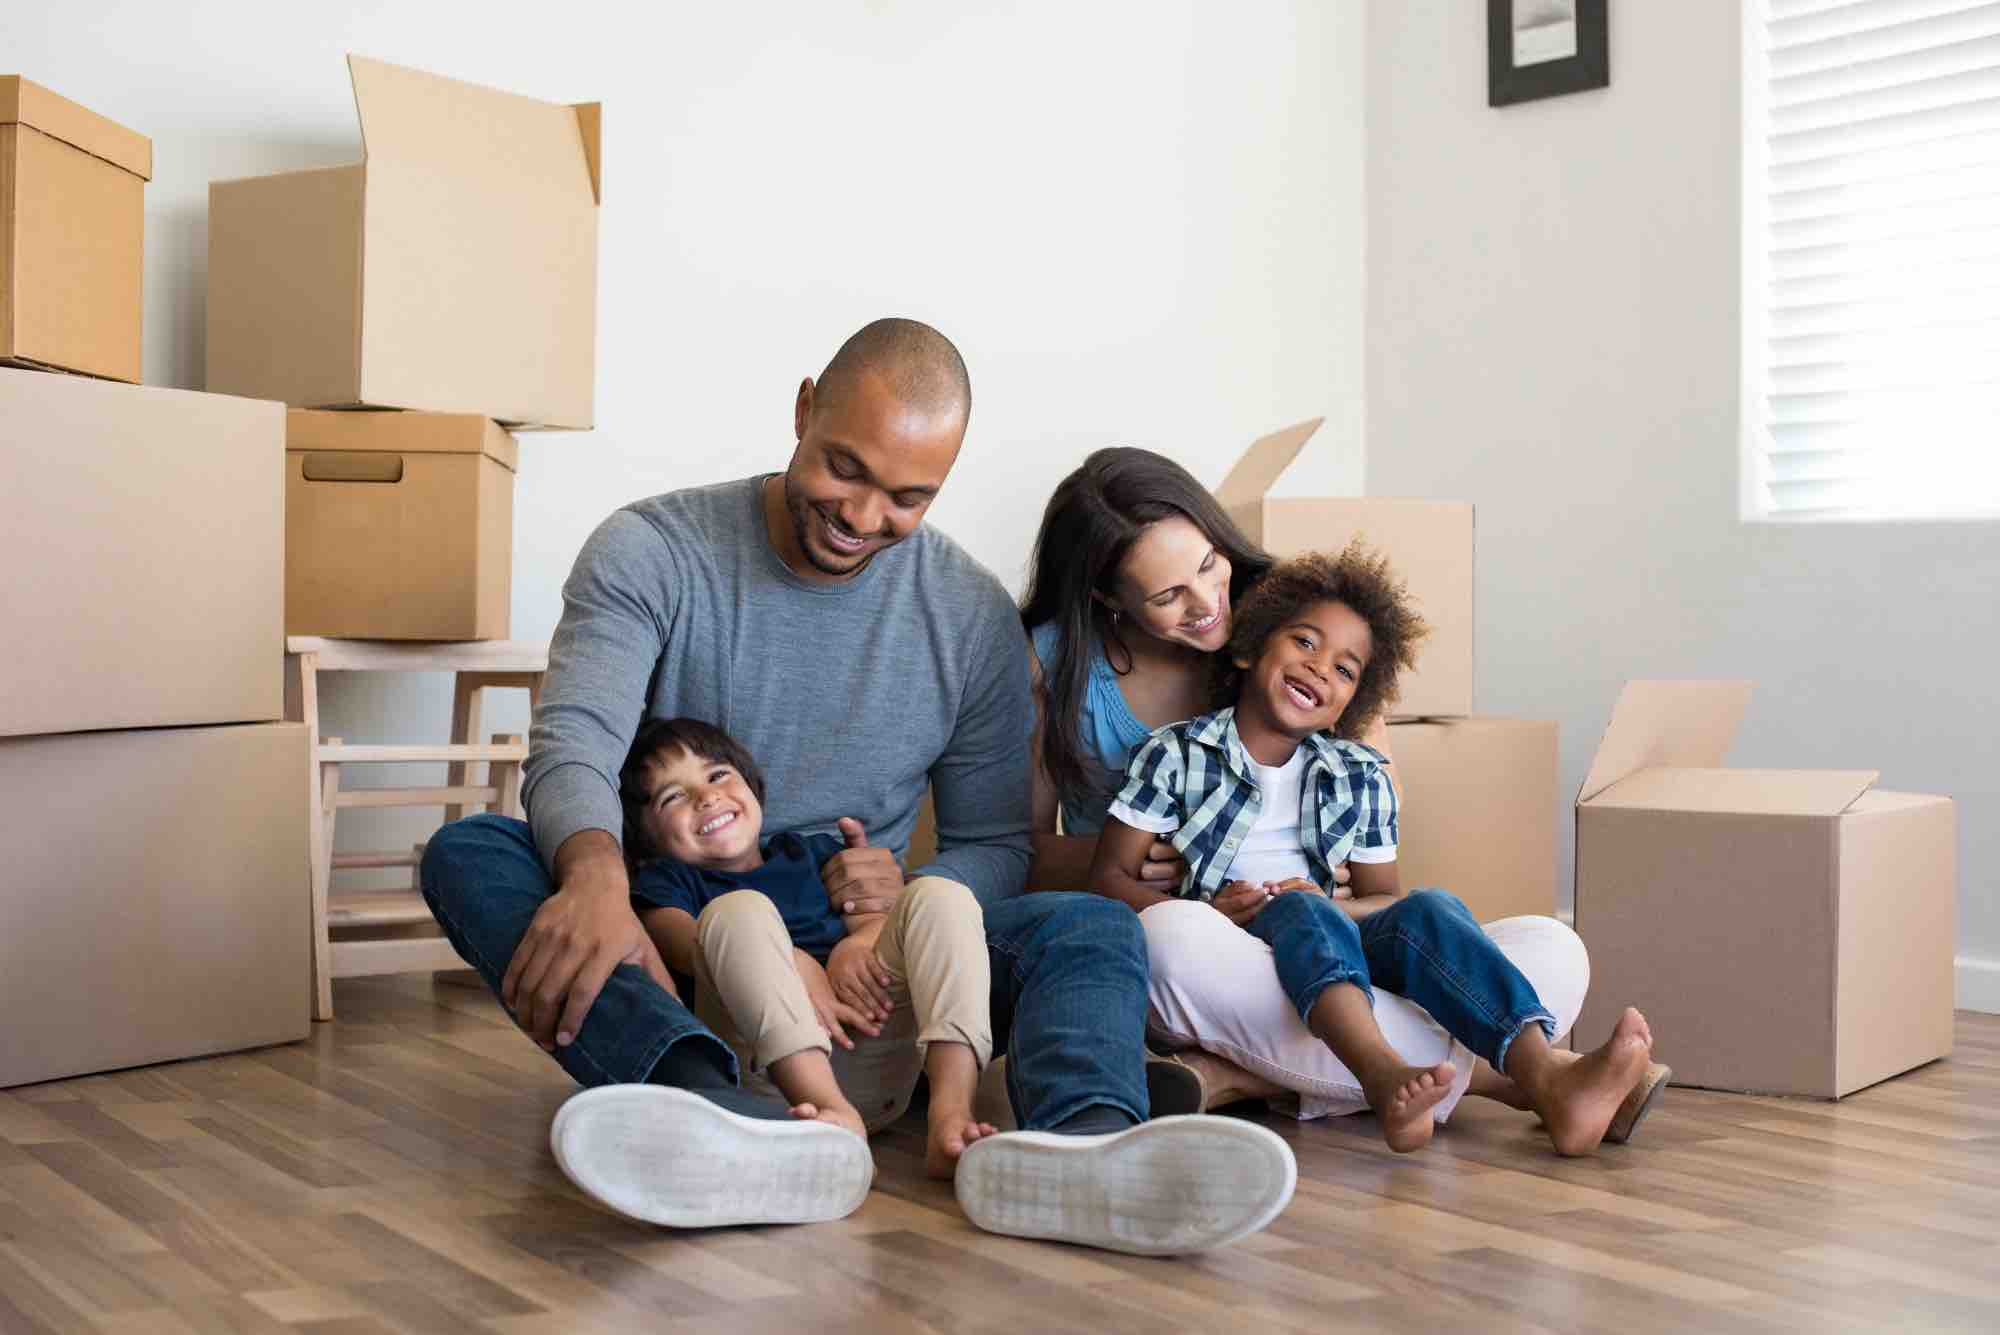 Personal Loans To Help With Moving Costs